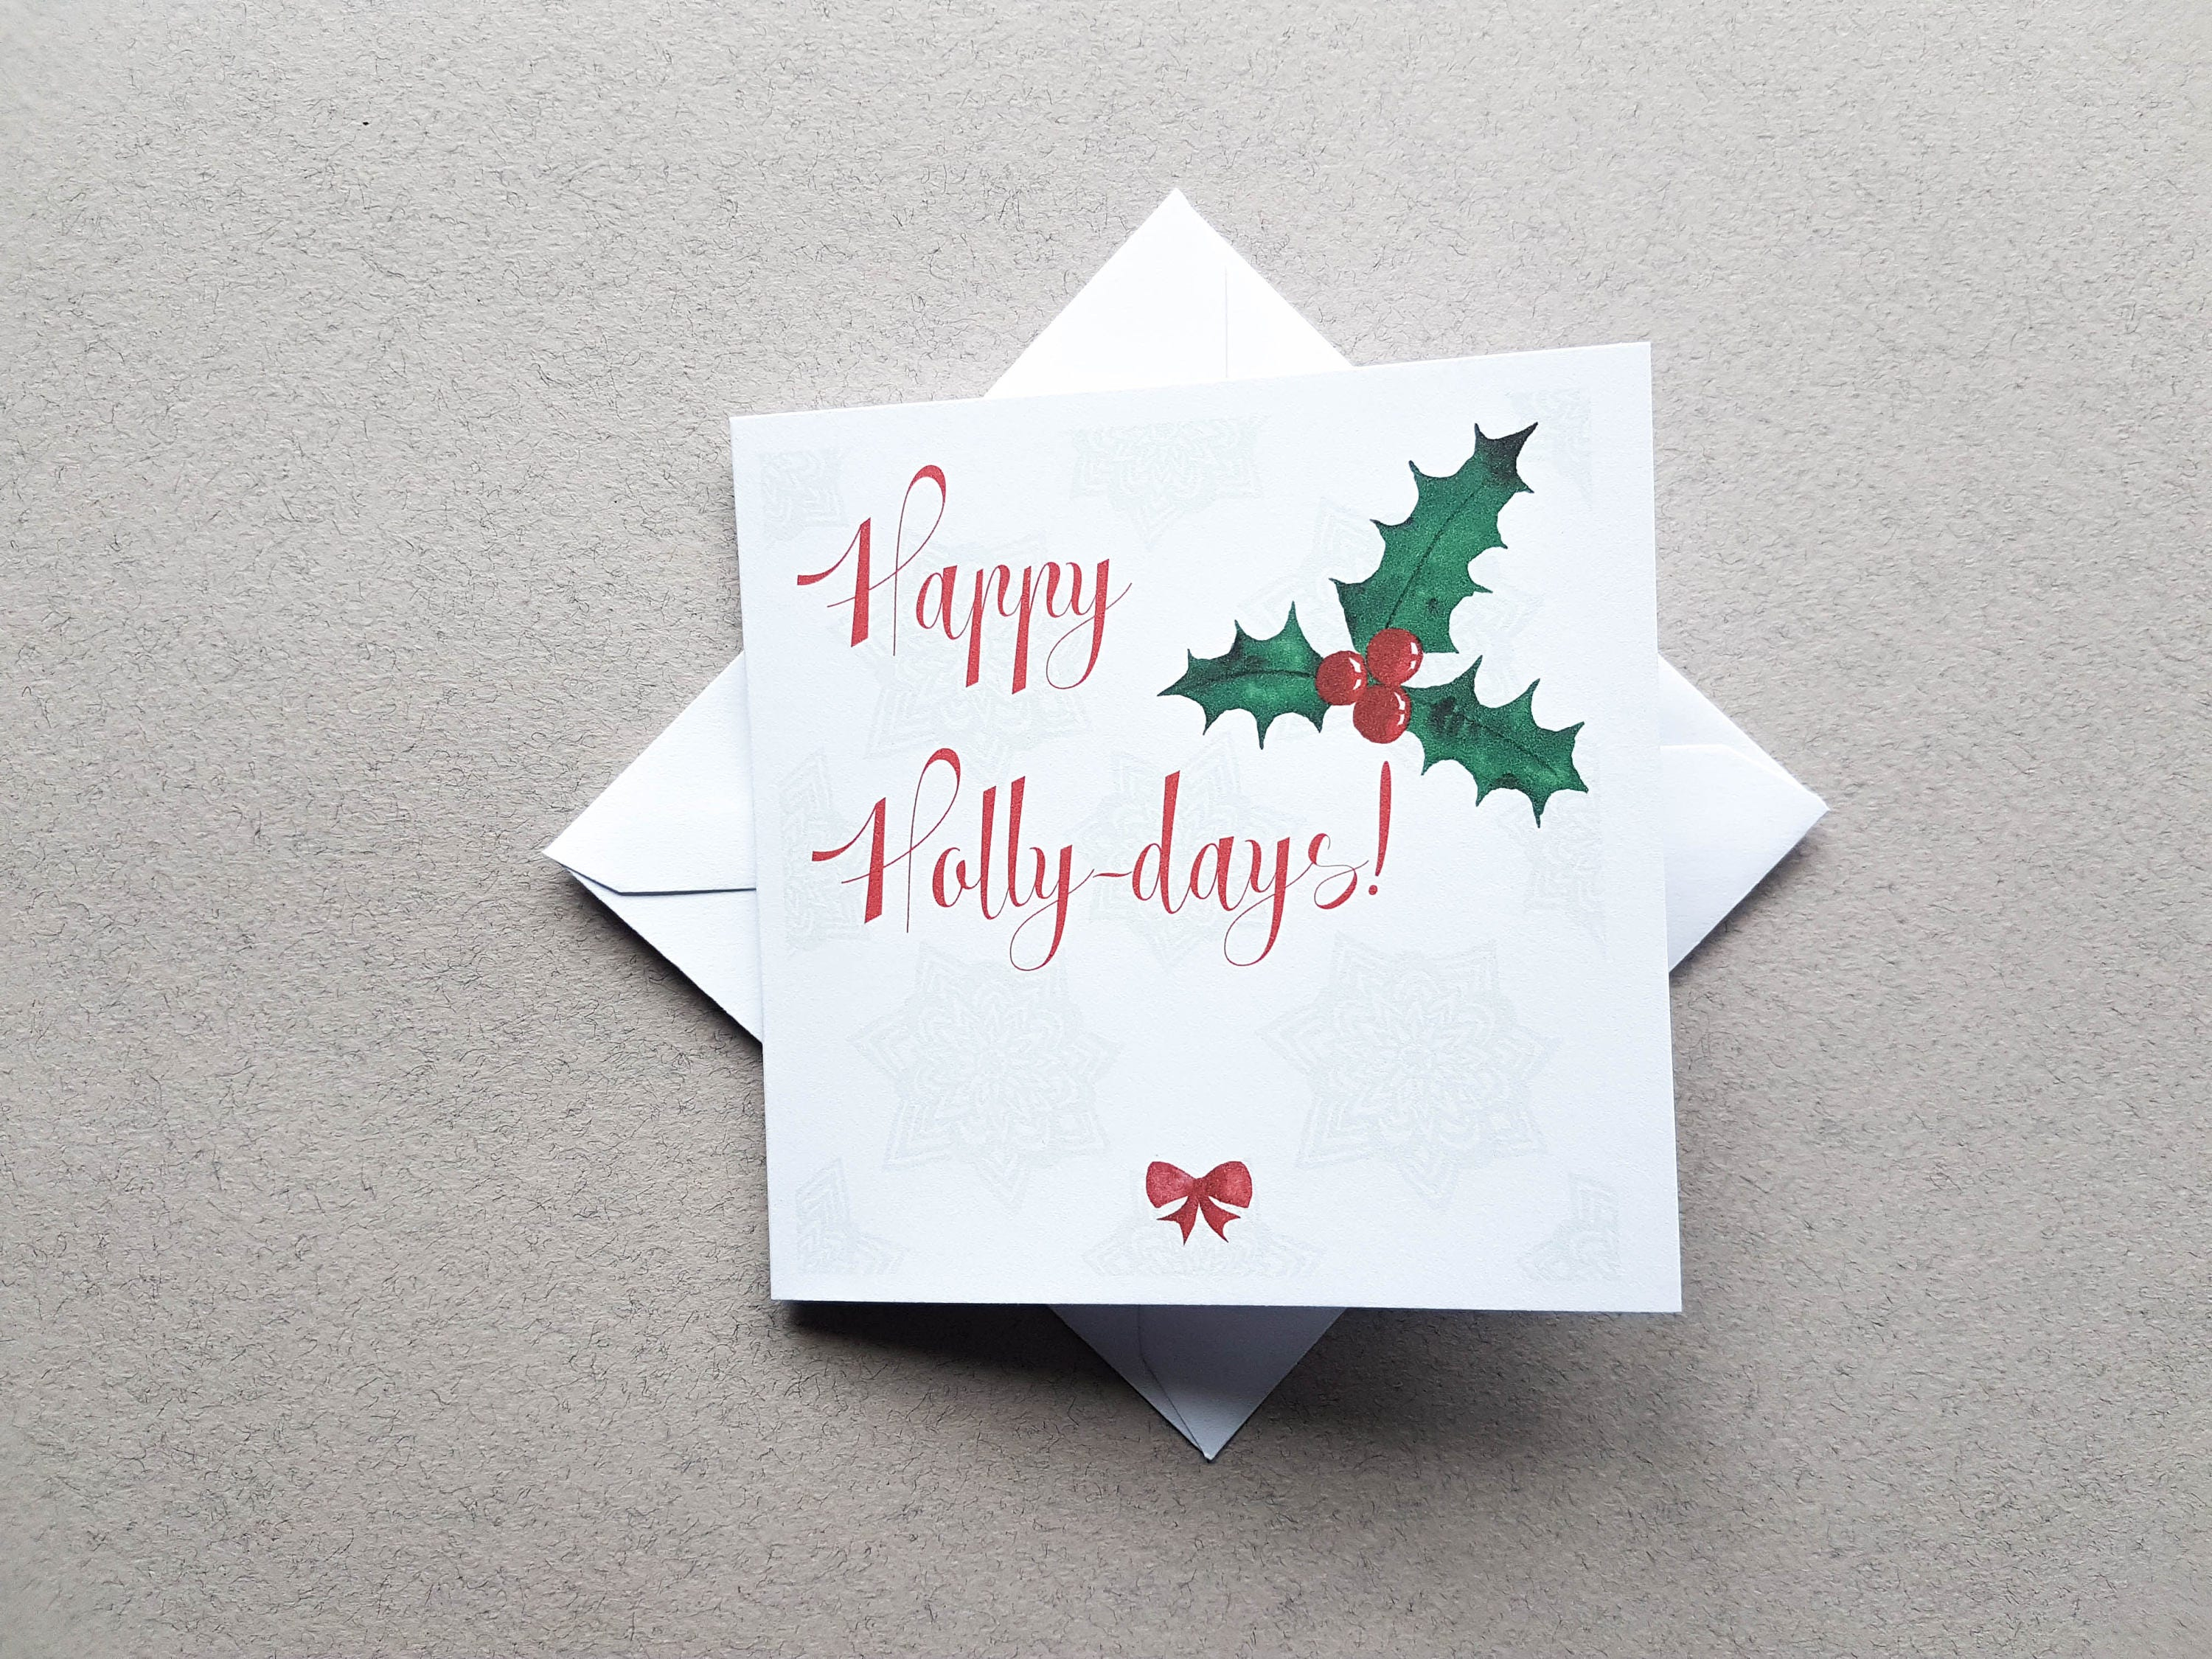 Funny holly christmas card family holiday card xmas card greeting funny holly christmas card family holiday card xmas card greeting card christmas m4hsunfo